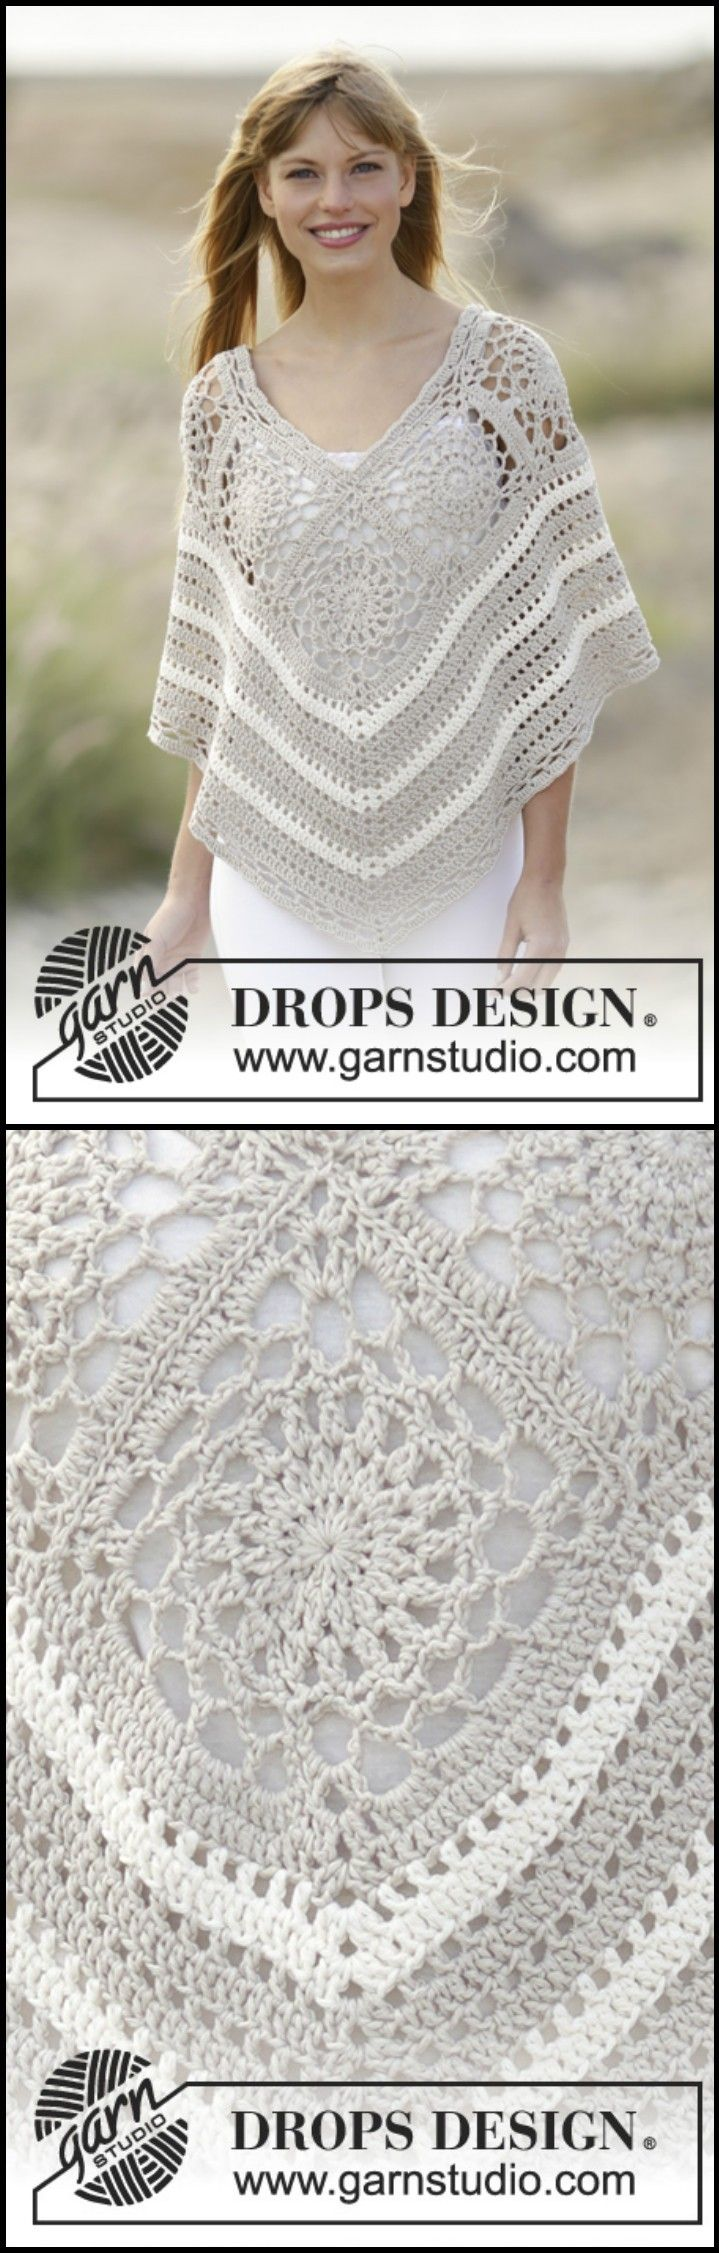 50 Free Crochet Poncho Patterns for All | Tejidos | Pinterest ...